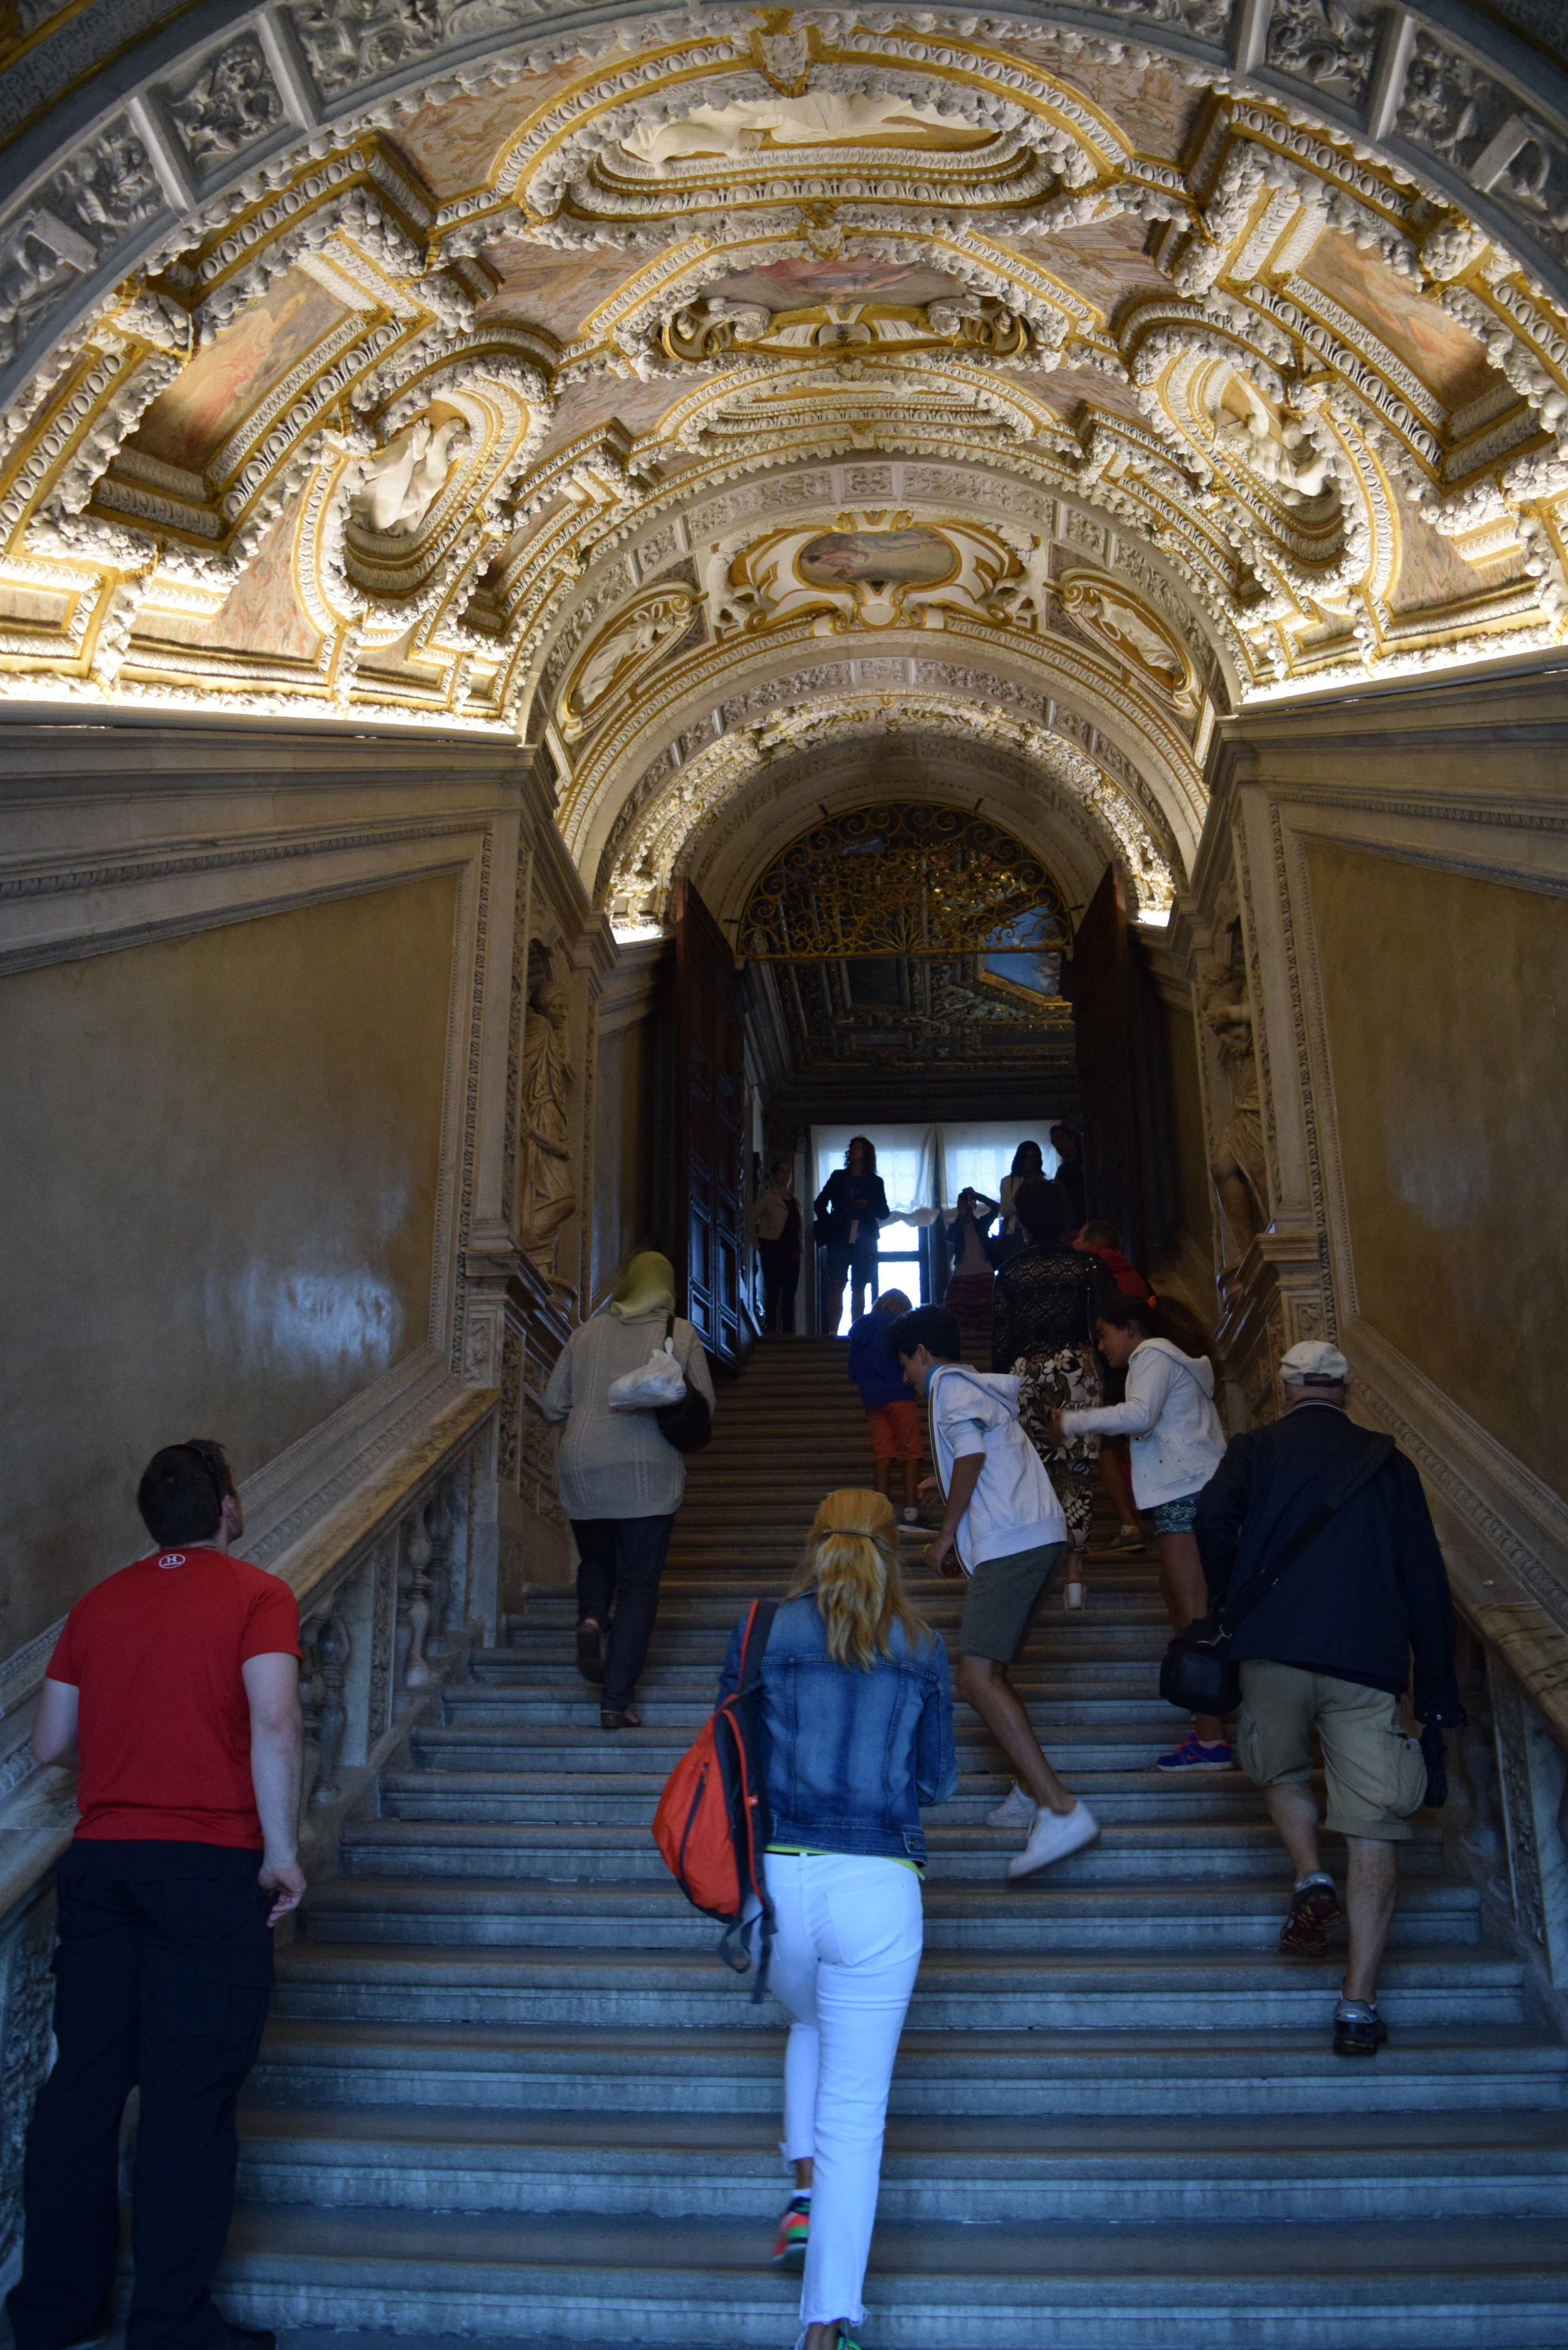 The Golden Staircase leading to the upper floors of the palace